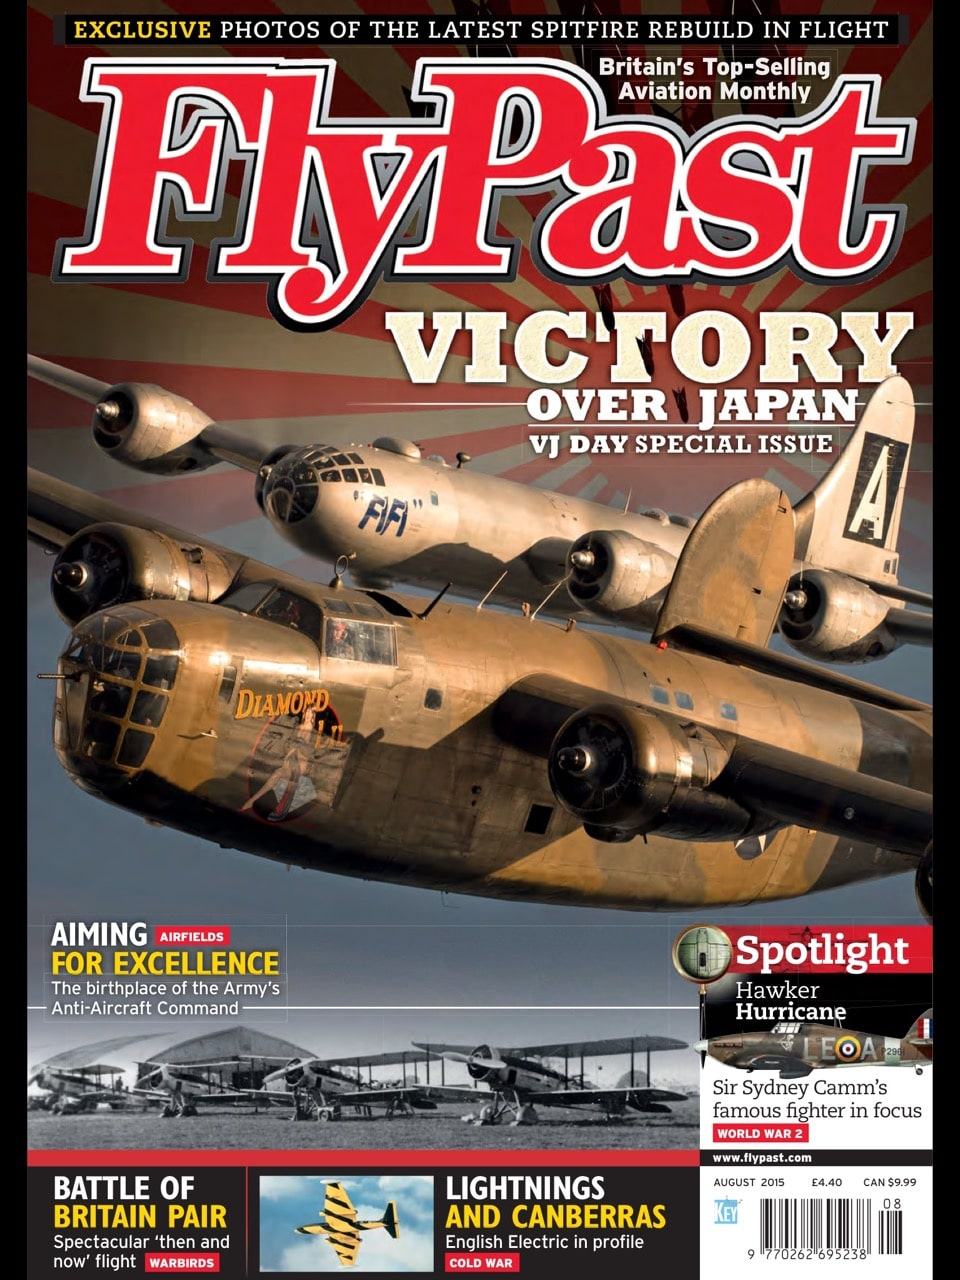 Airpower Museum featured in this summer's Flypast Magazine!